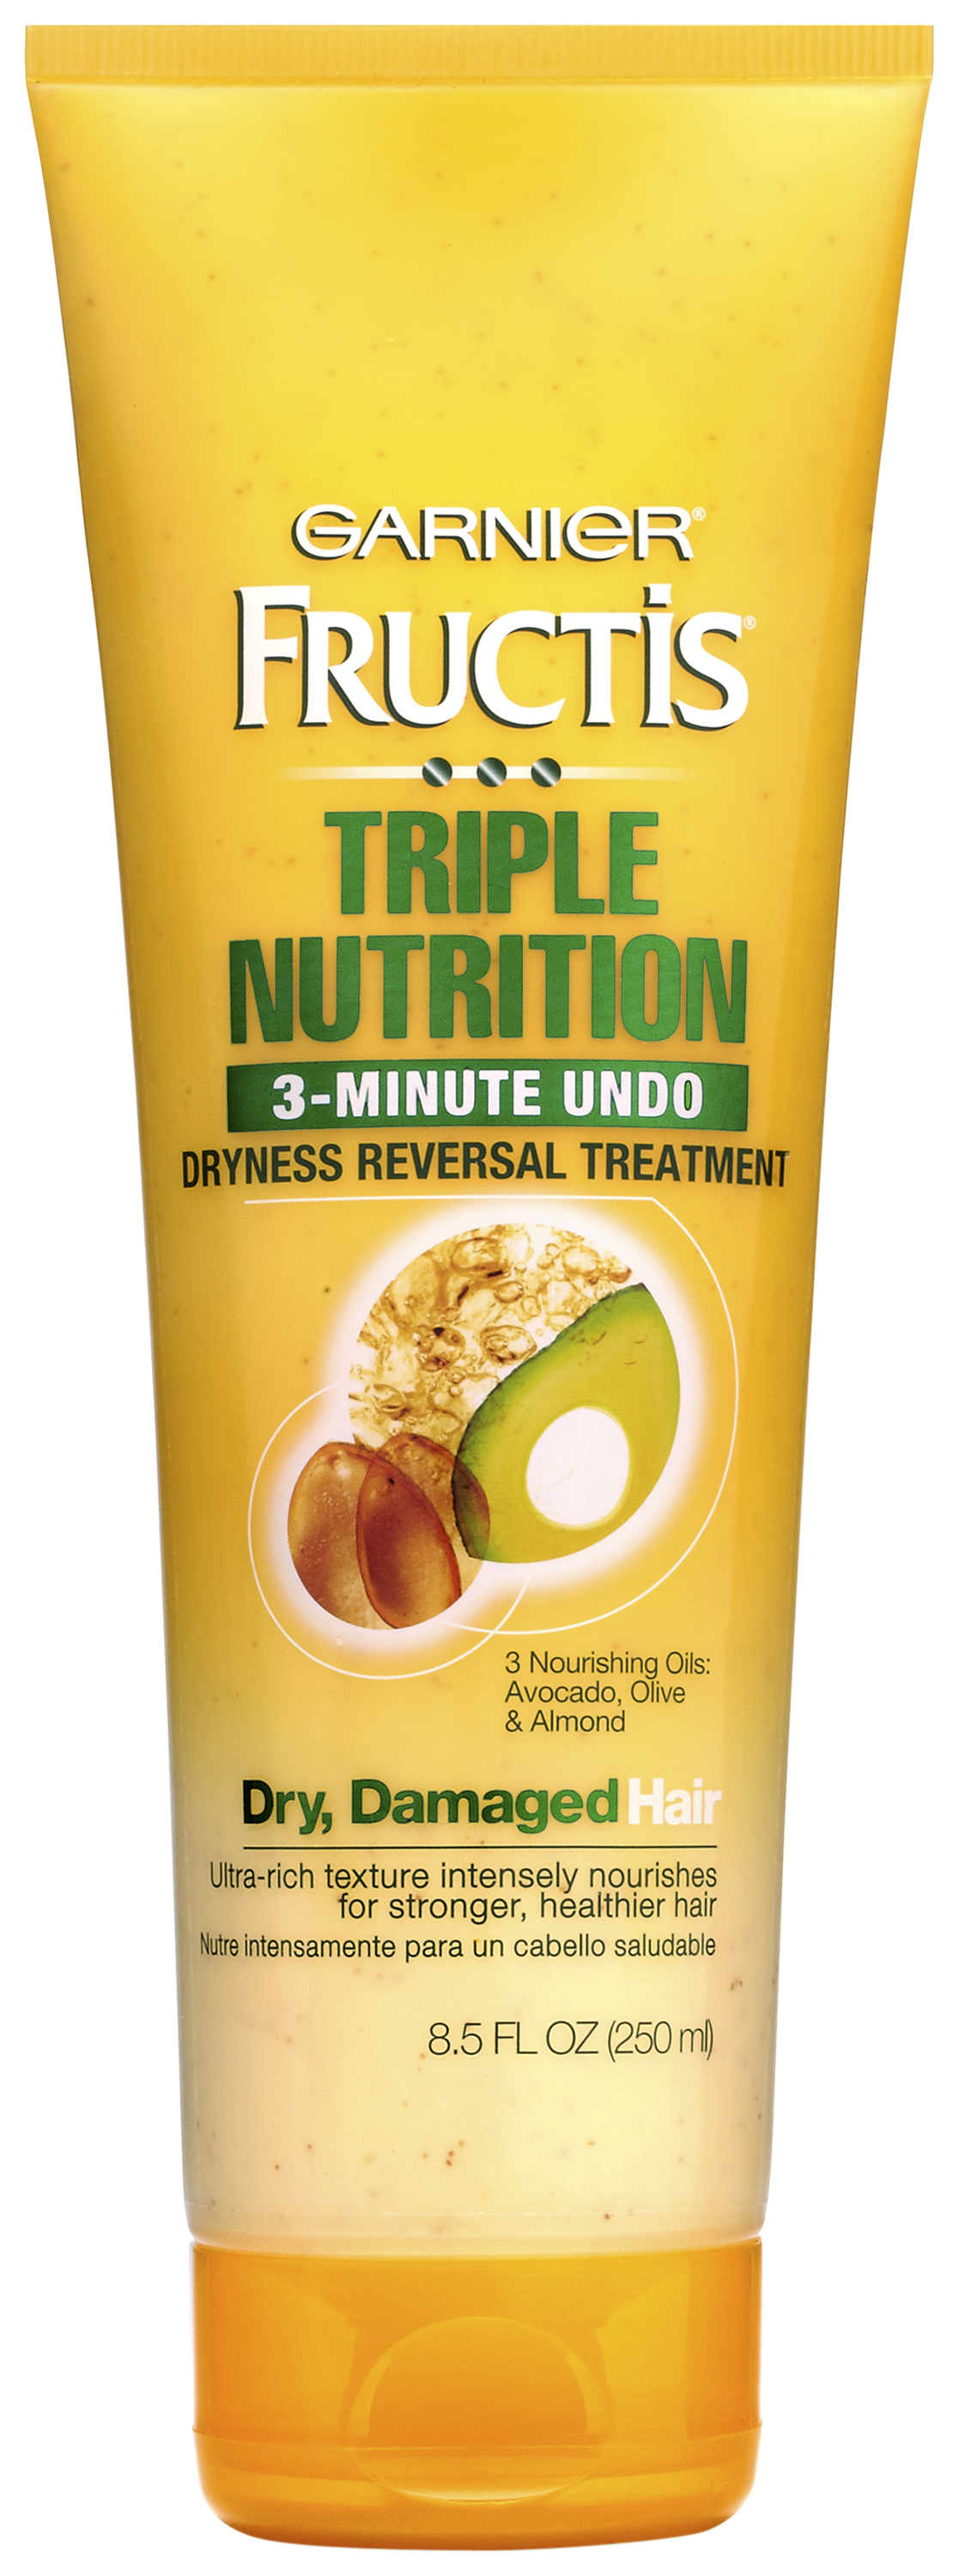 Garnier® Fructis Triple Nutrition 3 Minute Undo Dryness Reversal Treatment